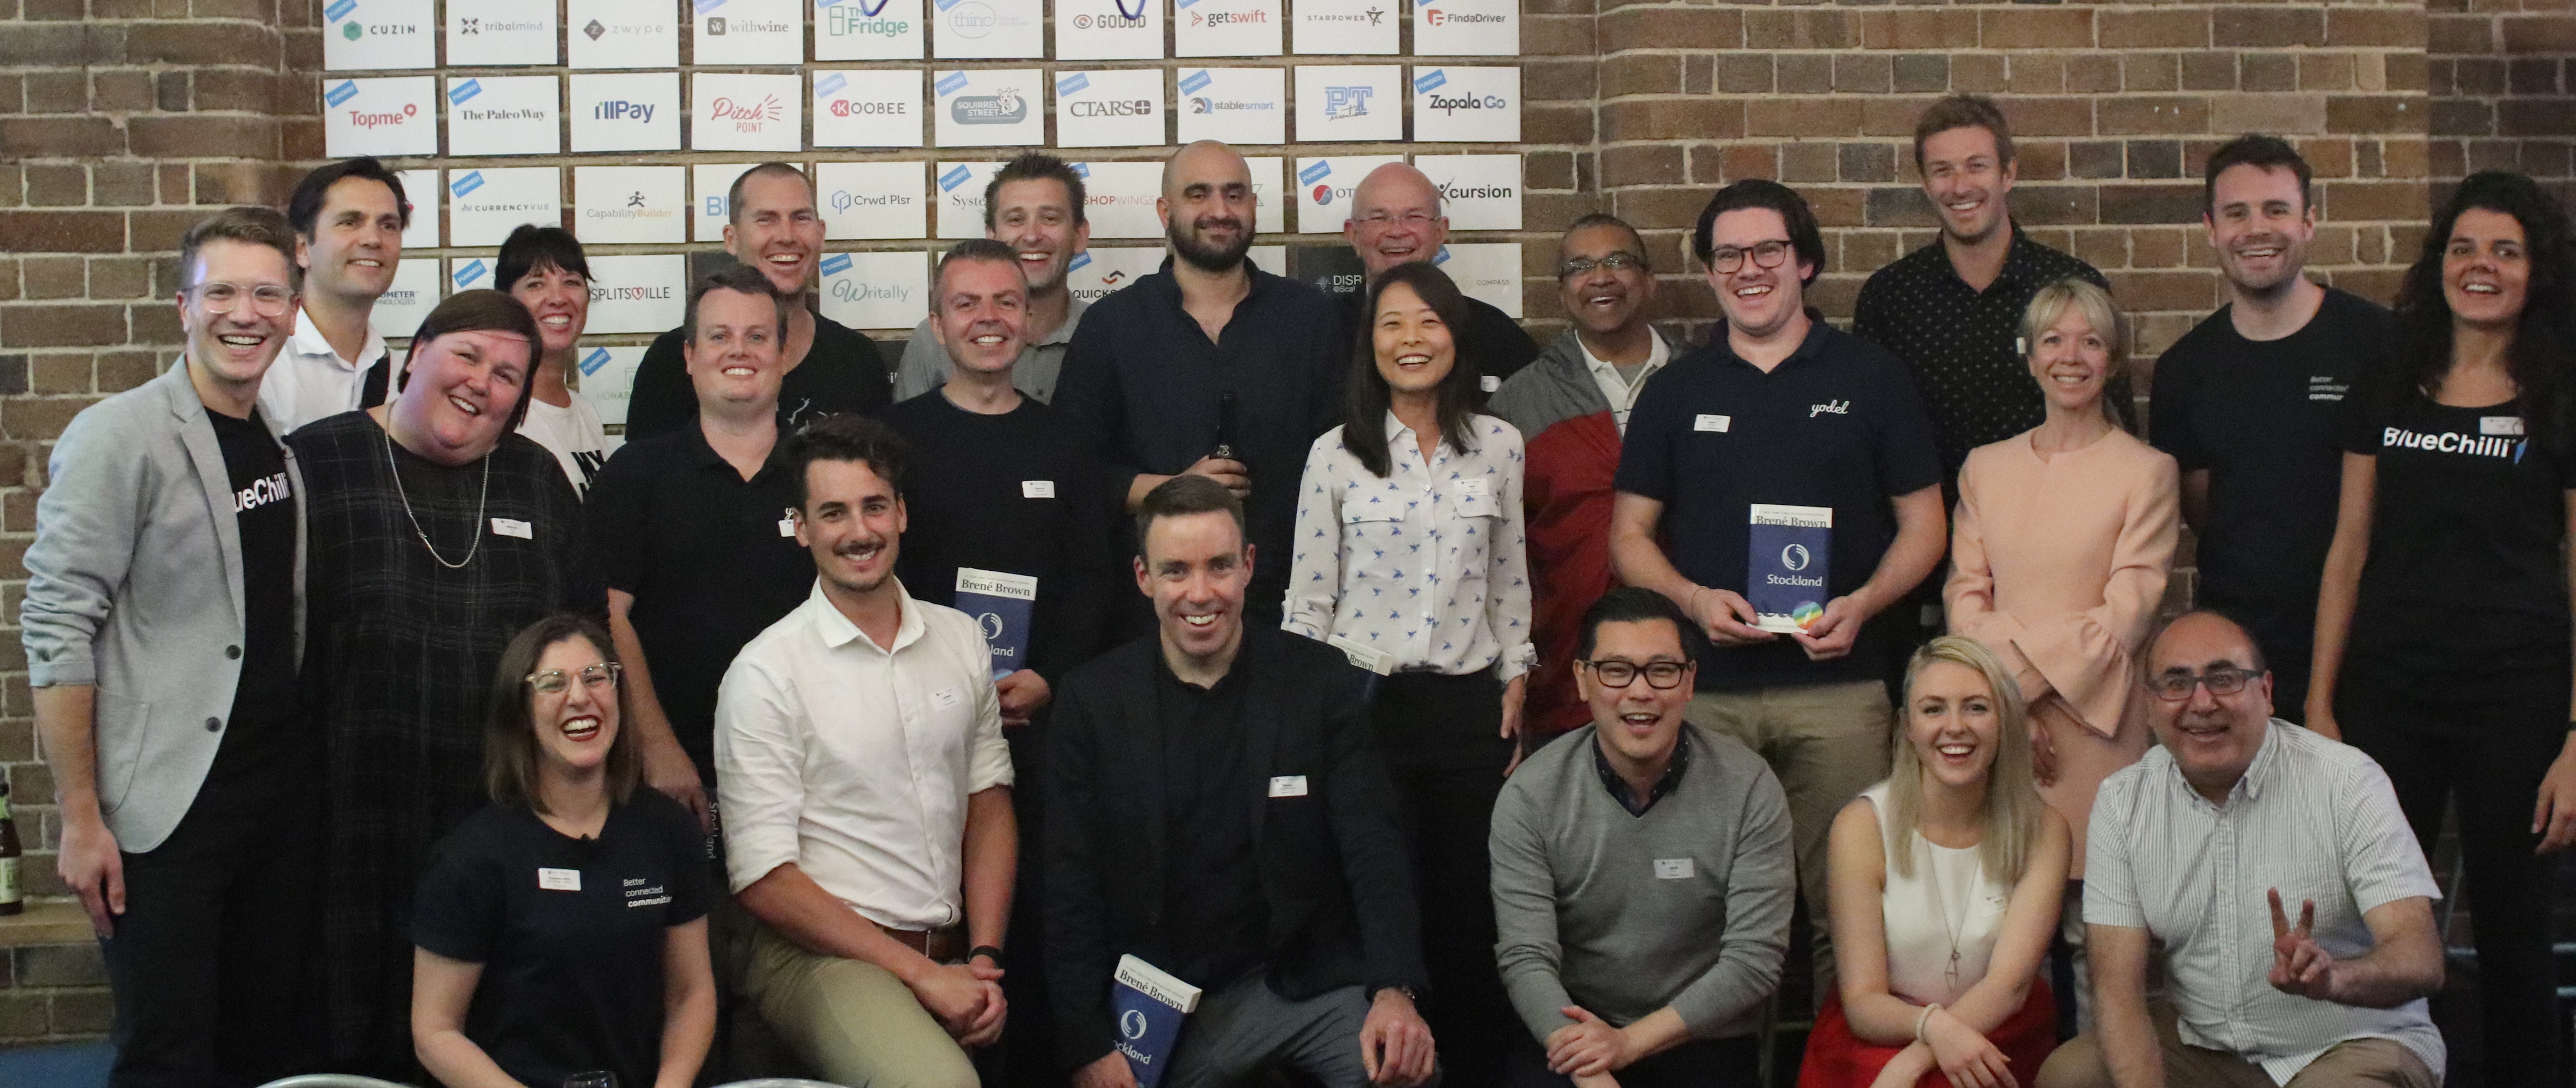 The Stockland Accelerator Bootcampers.